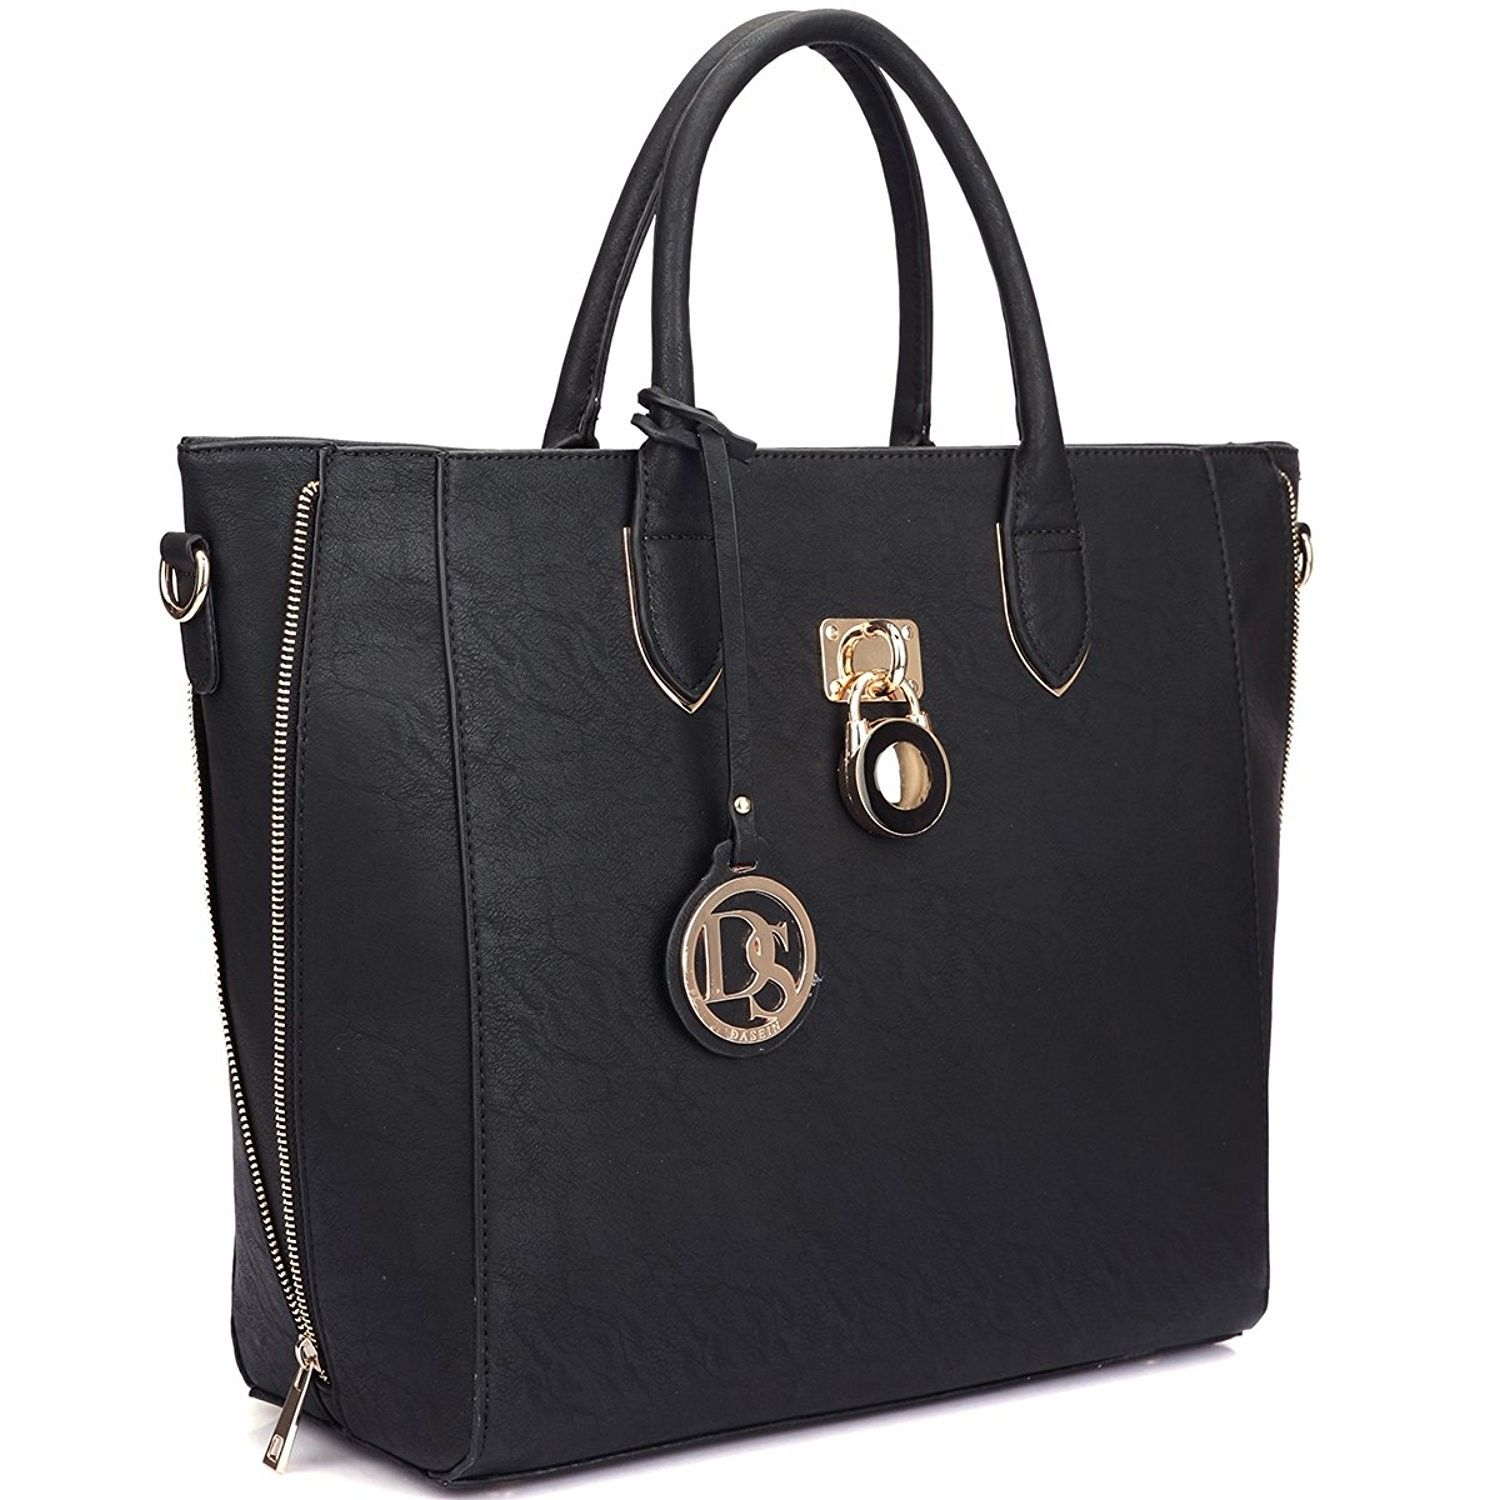 Women S Bags Top Handle Designer Structured Satchel Shoulder 01 6669 Padlock Black Without Wallet Cv12nsqj9ny Womensbags Tophandlebags